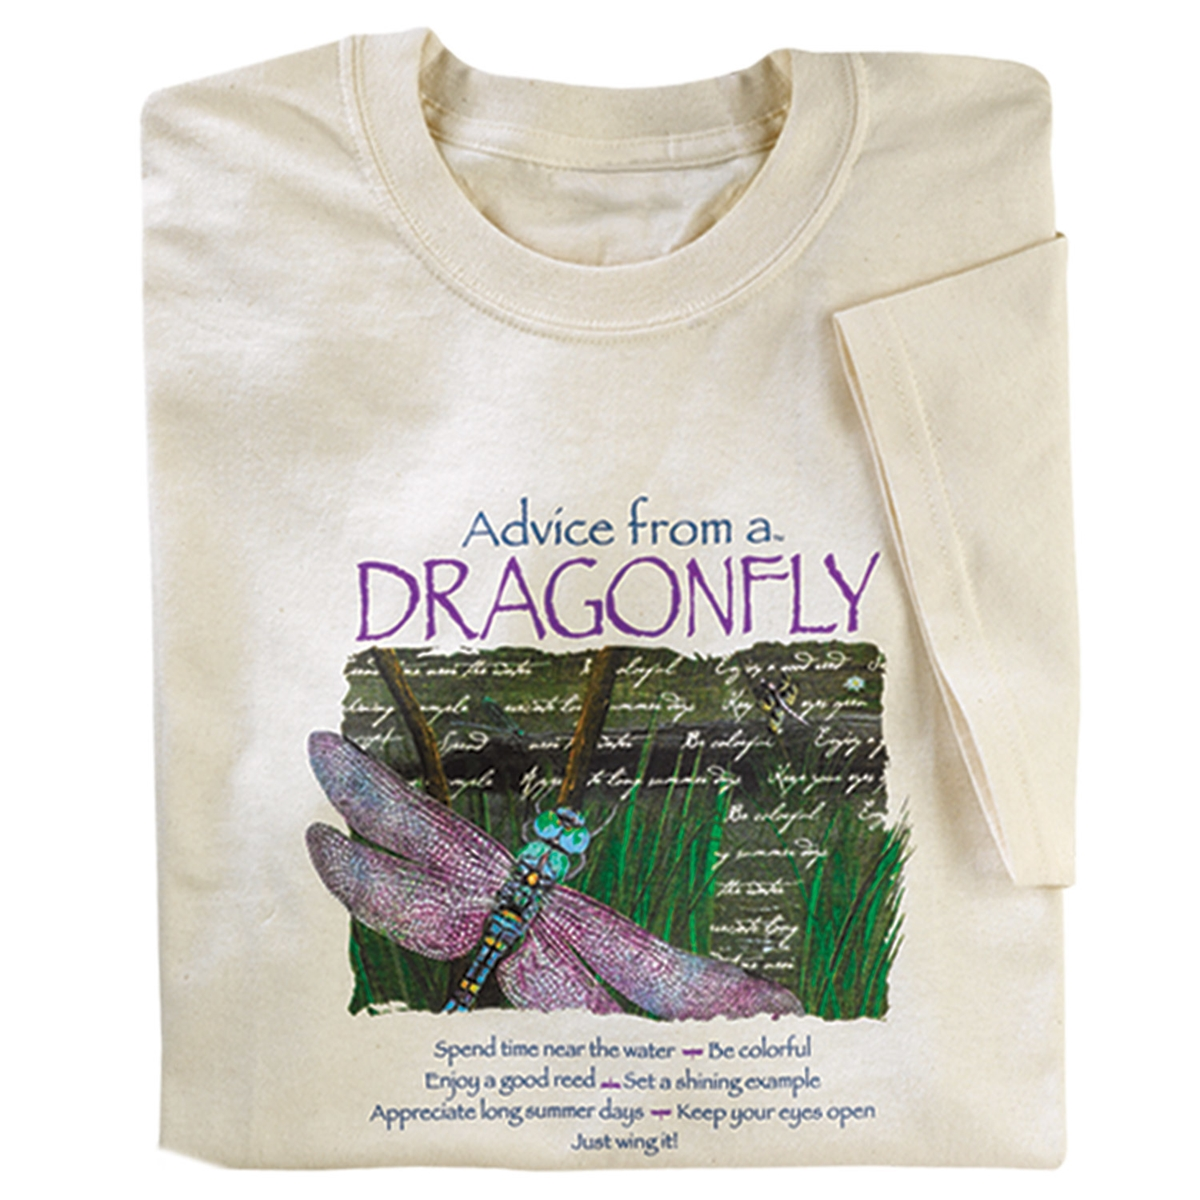 Advice from a Dragonfly Tee